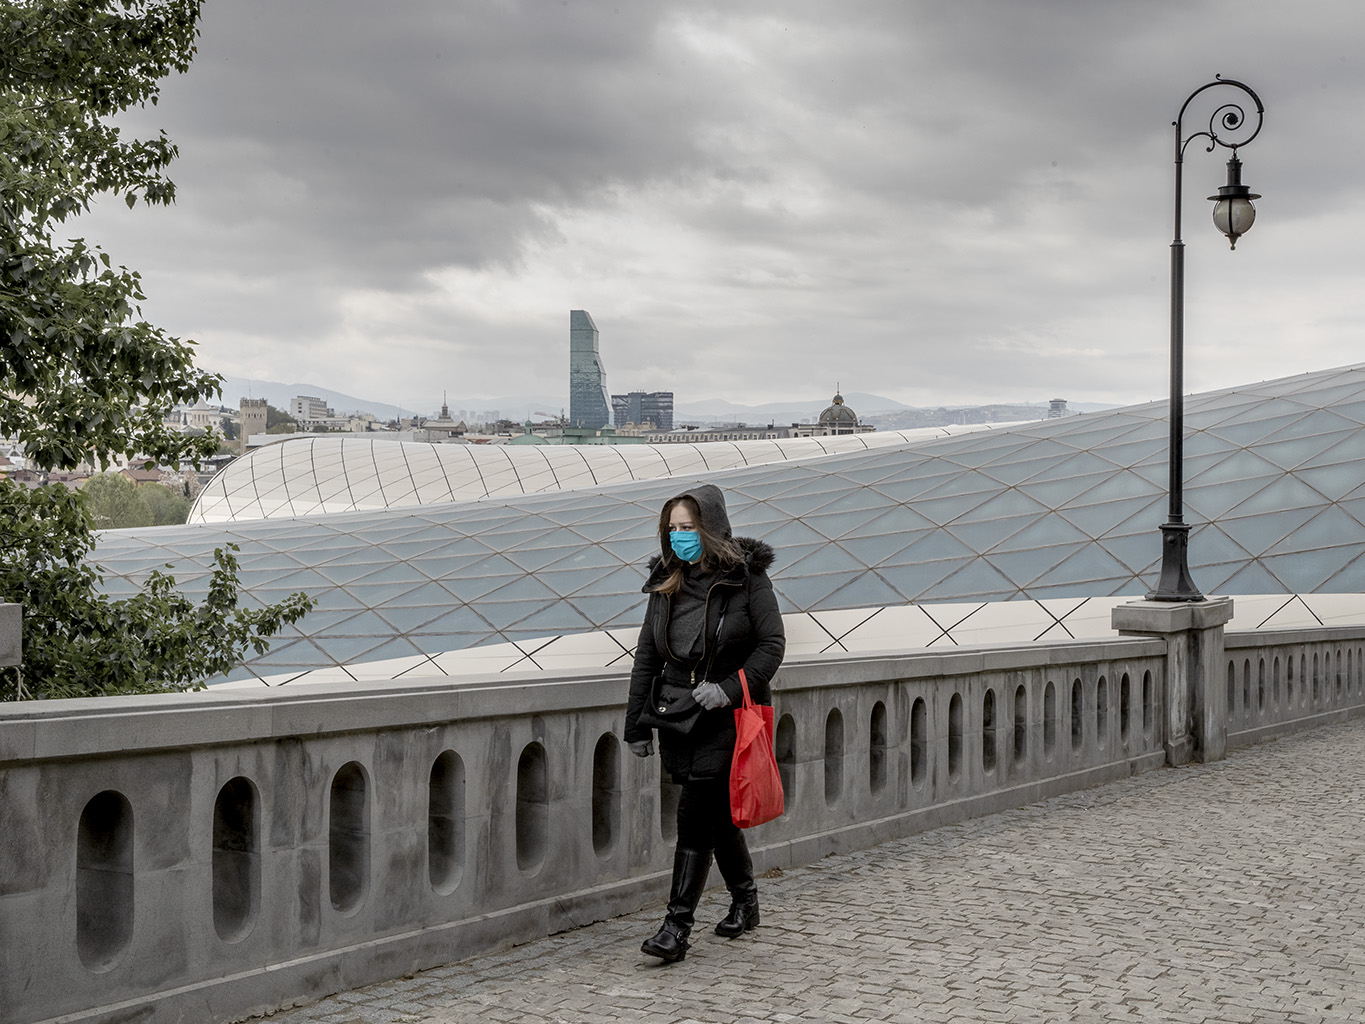 Adjusting to the new way of life, you can spot people wearing masks, even if the streets are empty.